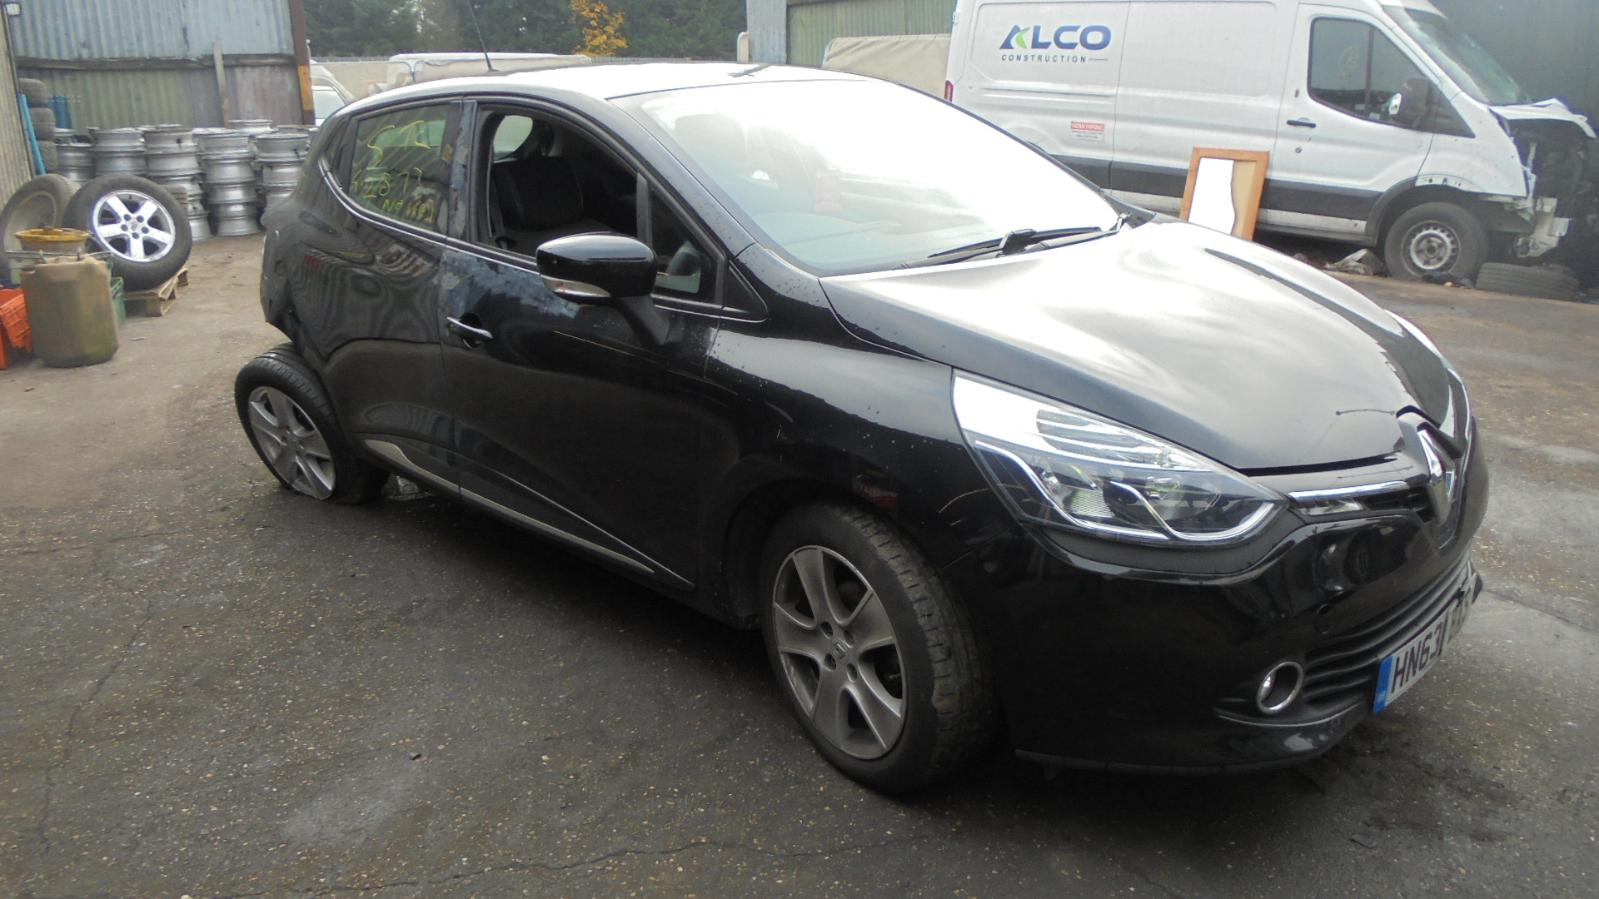 Renault-Clio-Right-O-S-wing-mirror-electric-power-folding-painted-black